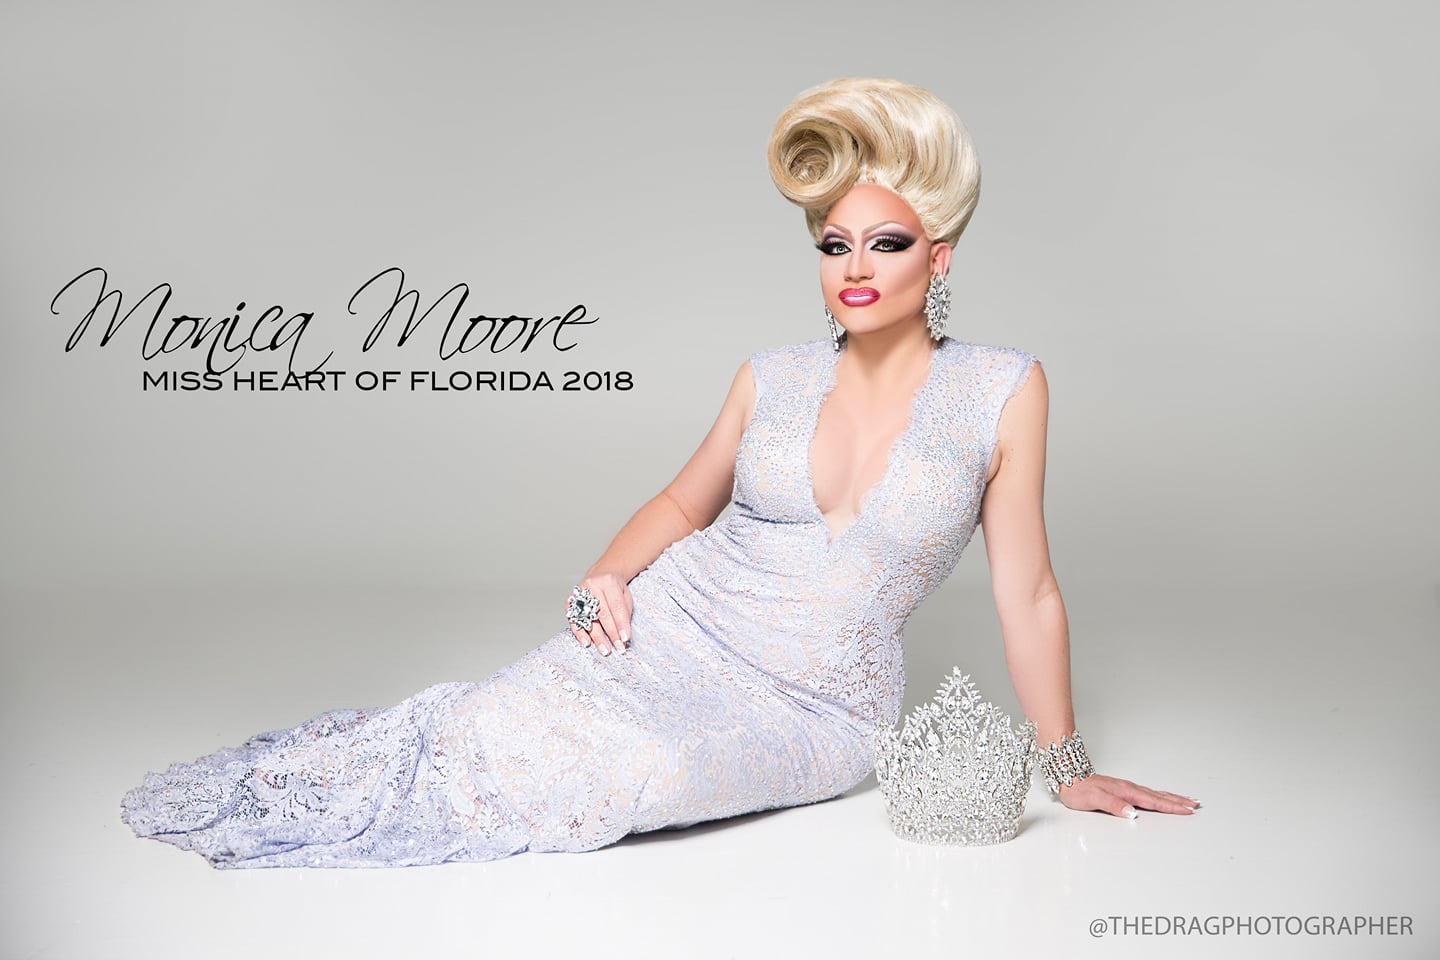 Monica Moore - Photo by The Drag Photographer